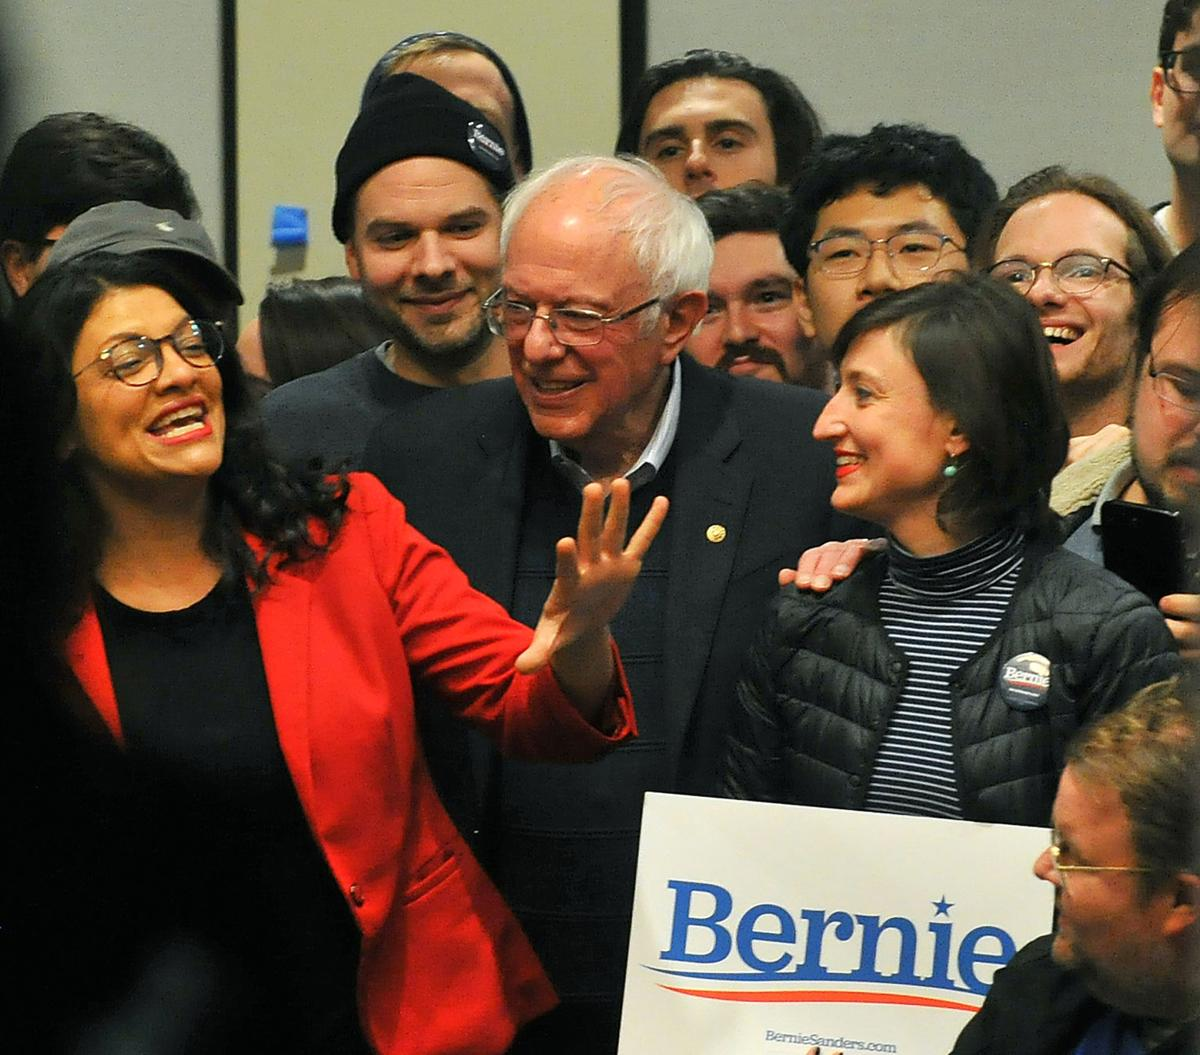 Sen. Bernie Sanders rally with Rep. Rashida Tlaib at St. Ambrose University.